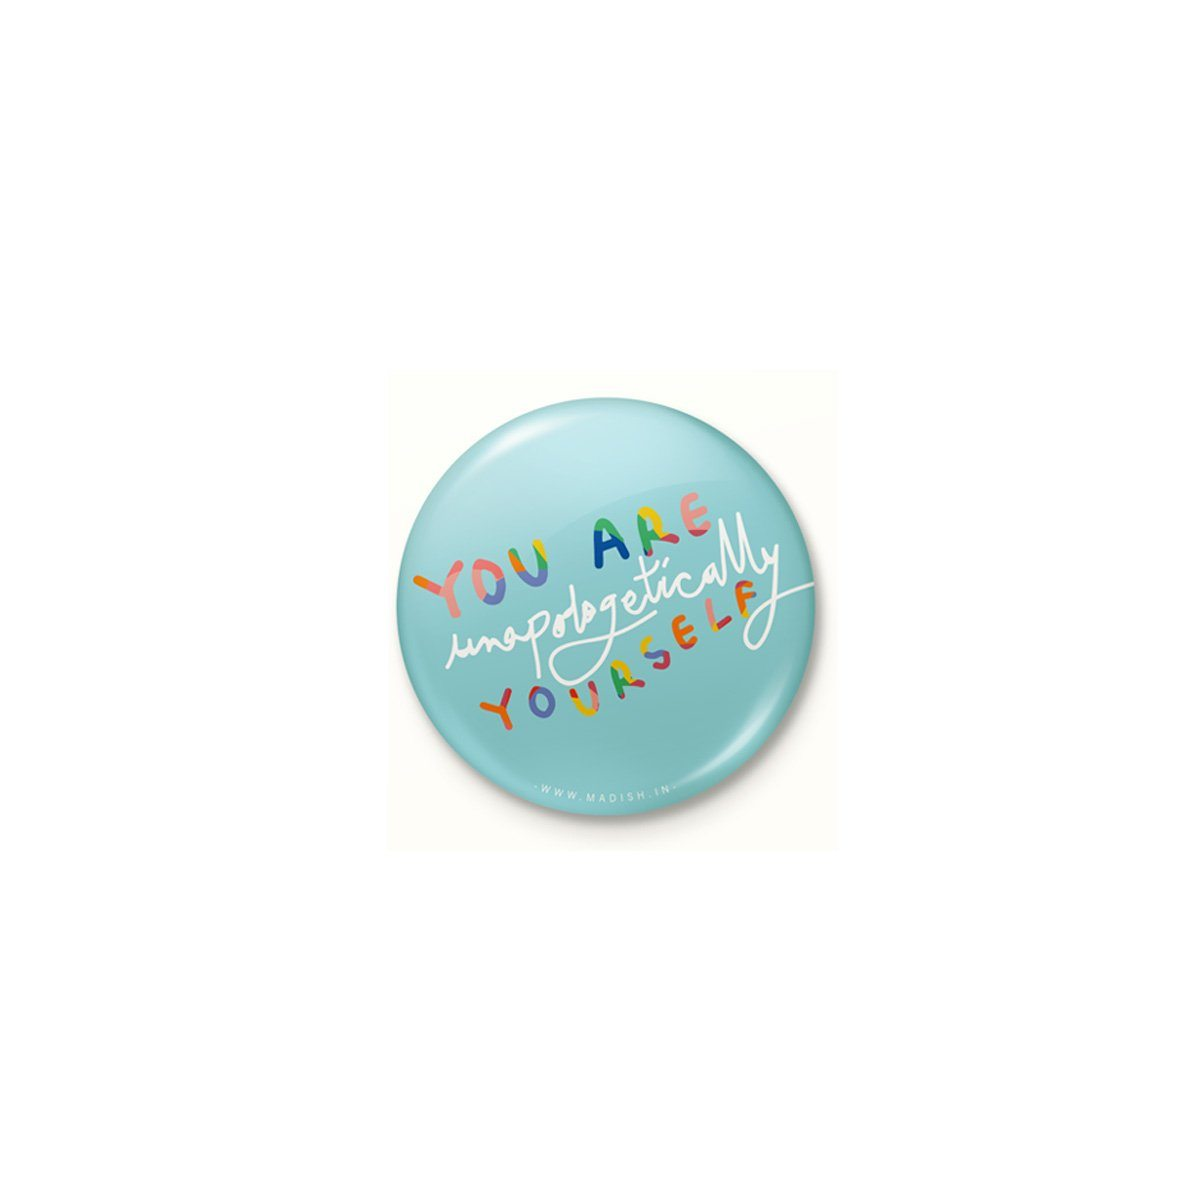 Unapologetically Yourself Badge by Madish